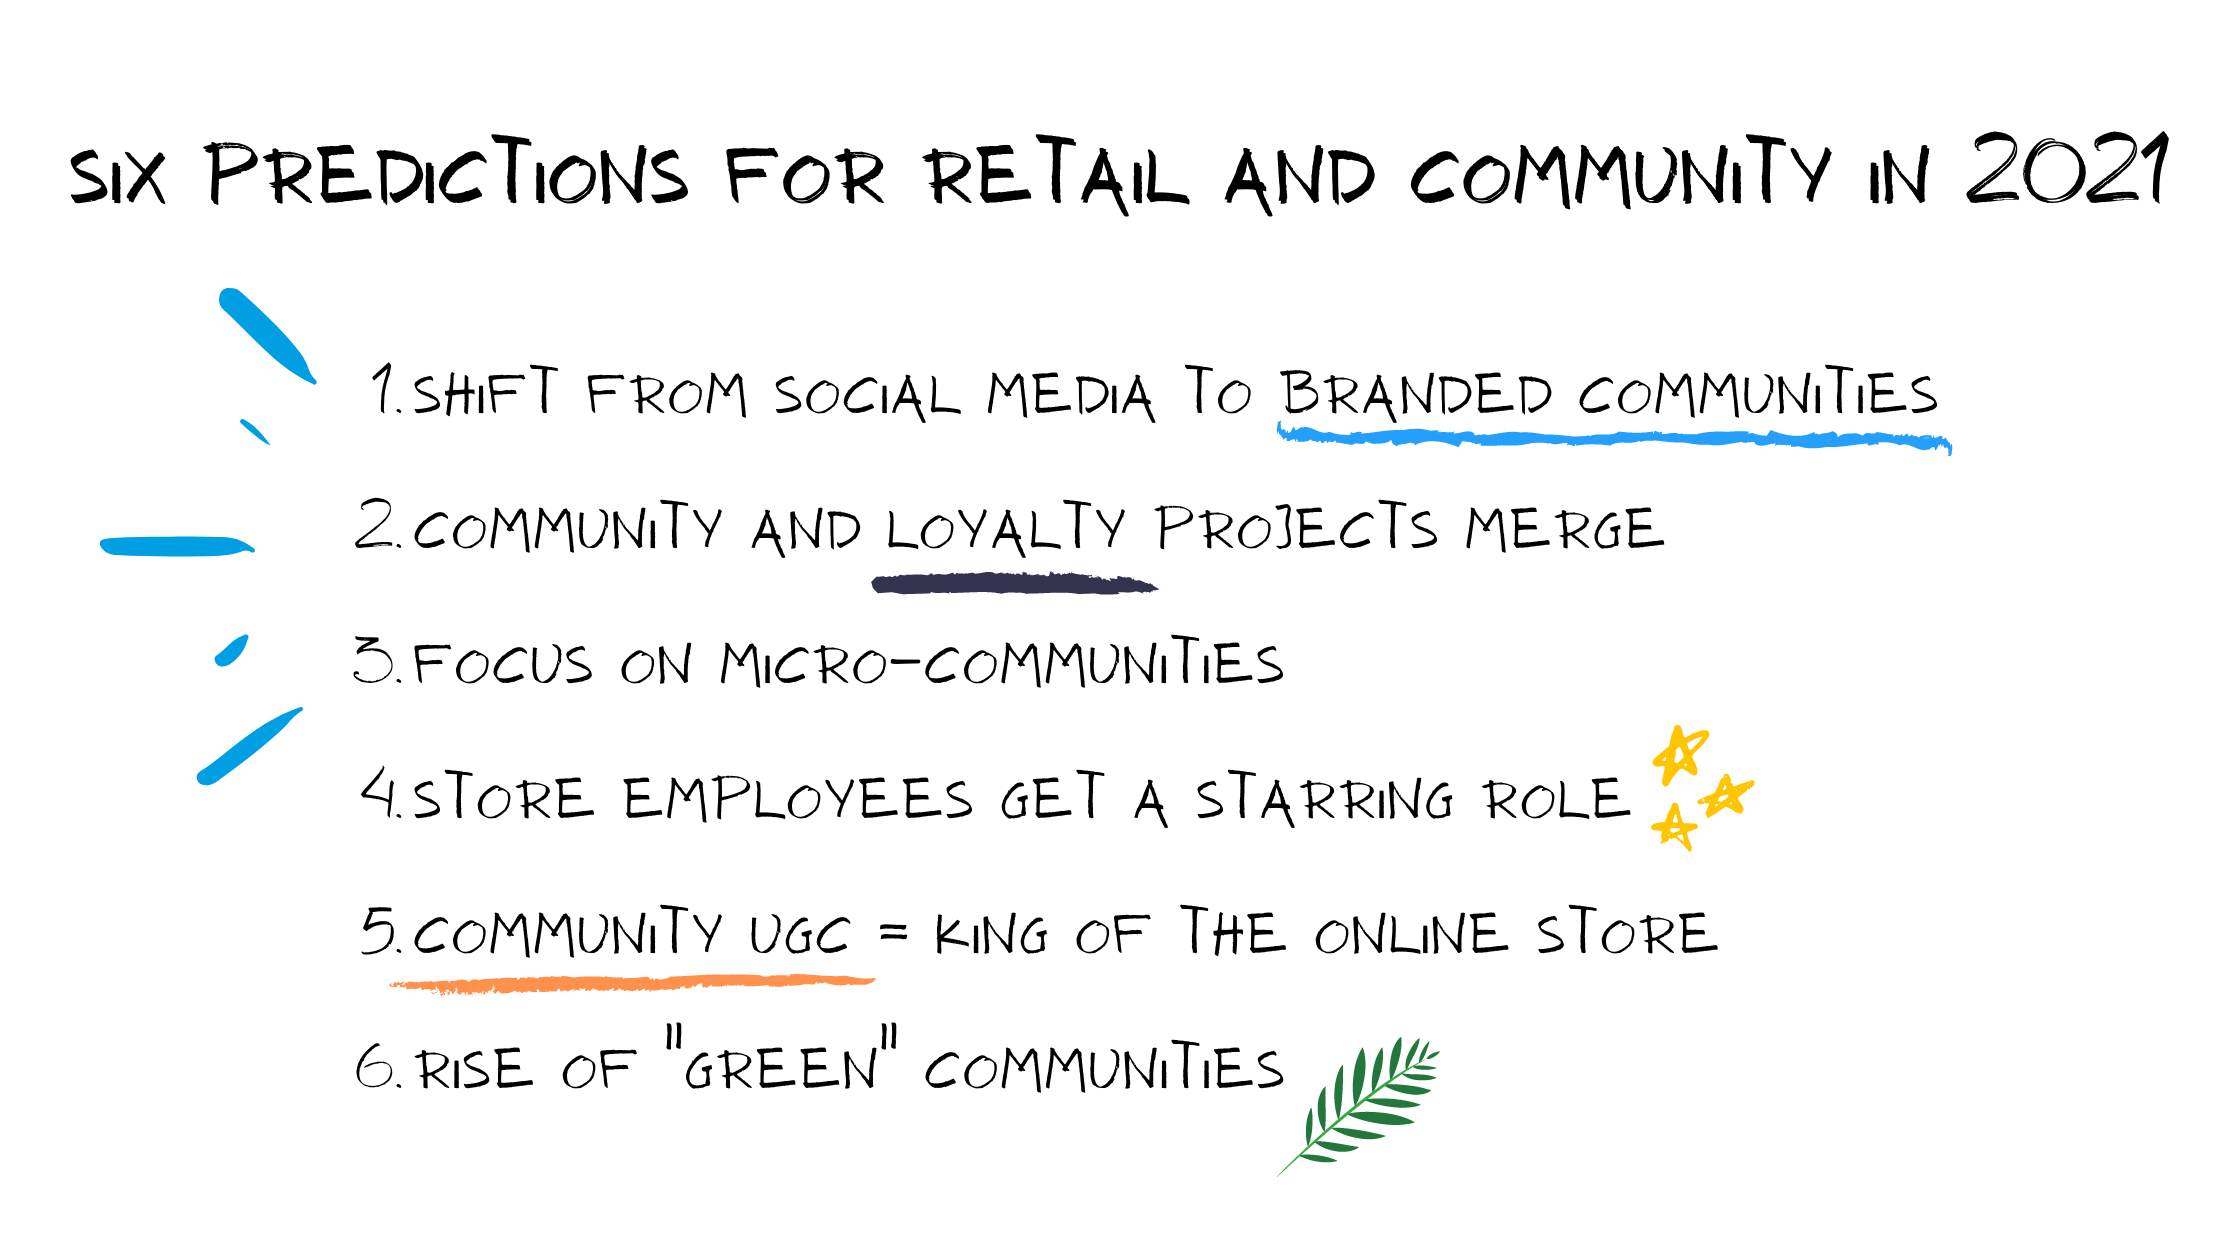 Predictions for community and retail 2021 - notes